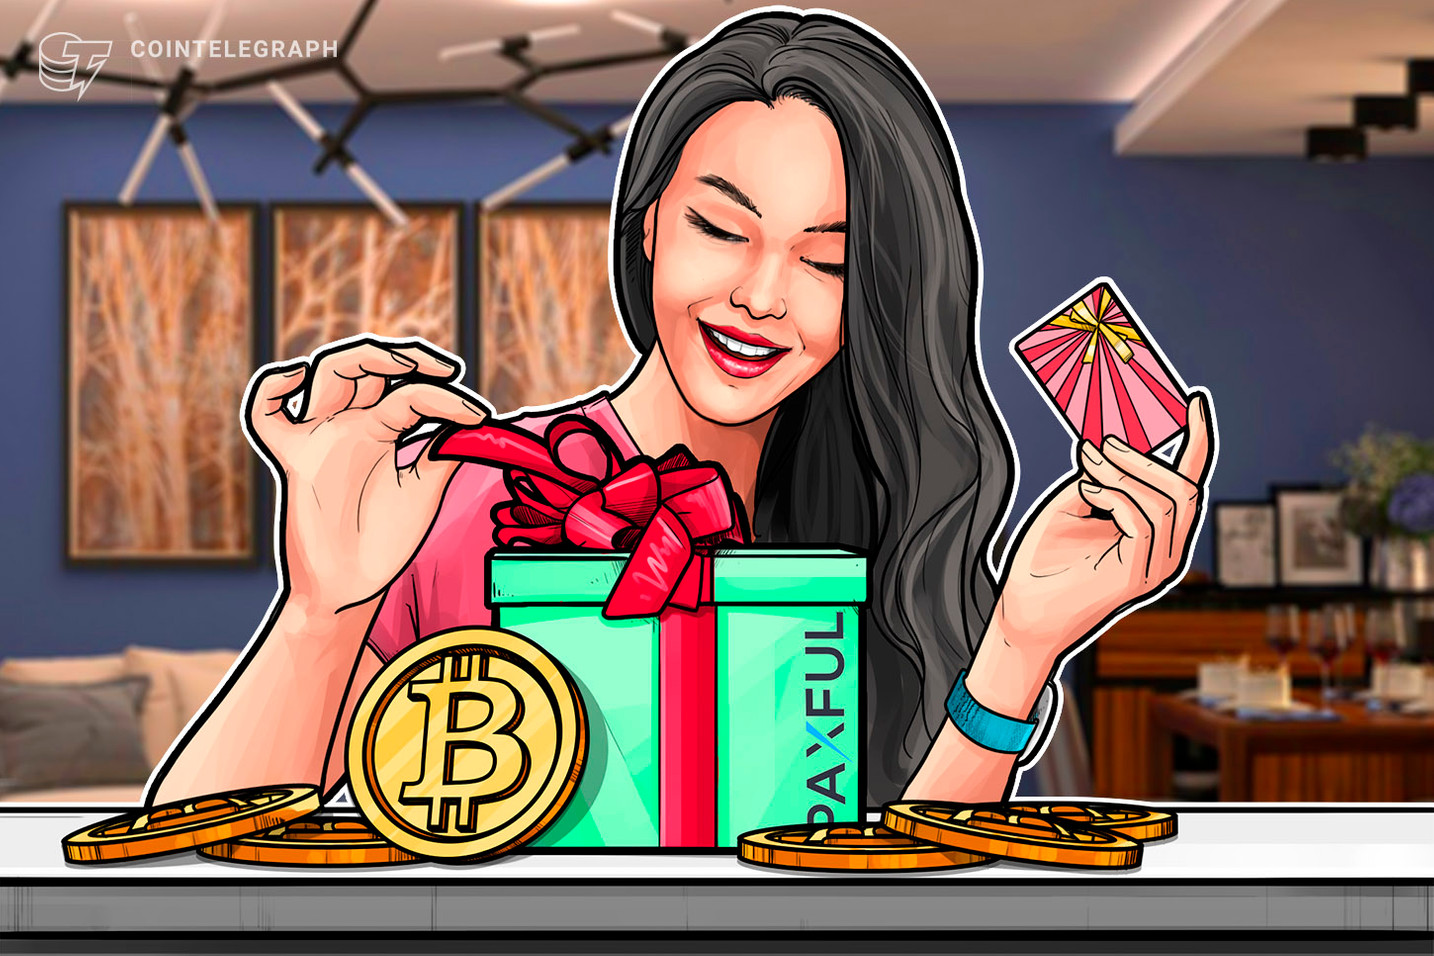 Traders on Paxful sell $16.2M of Bitcoin for discounted gift cards each week